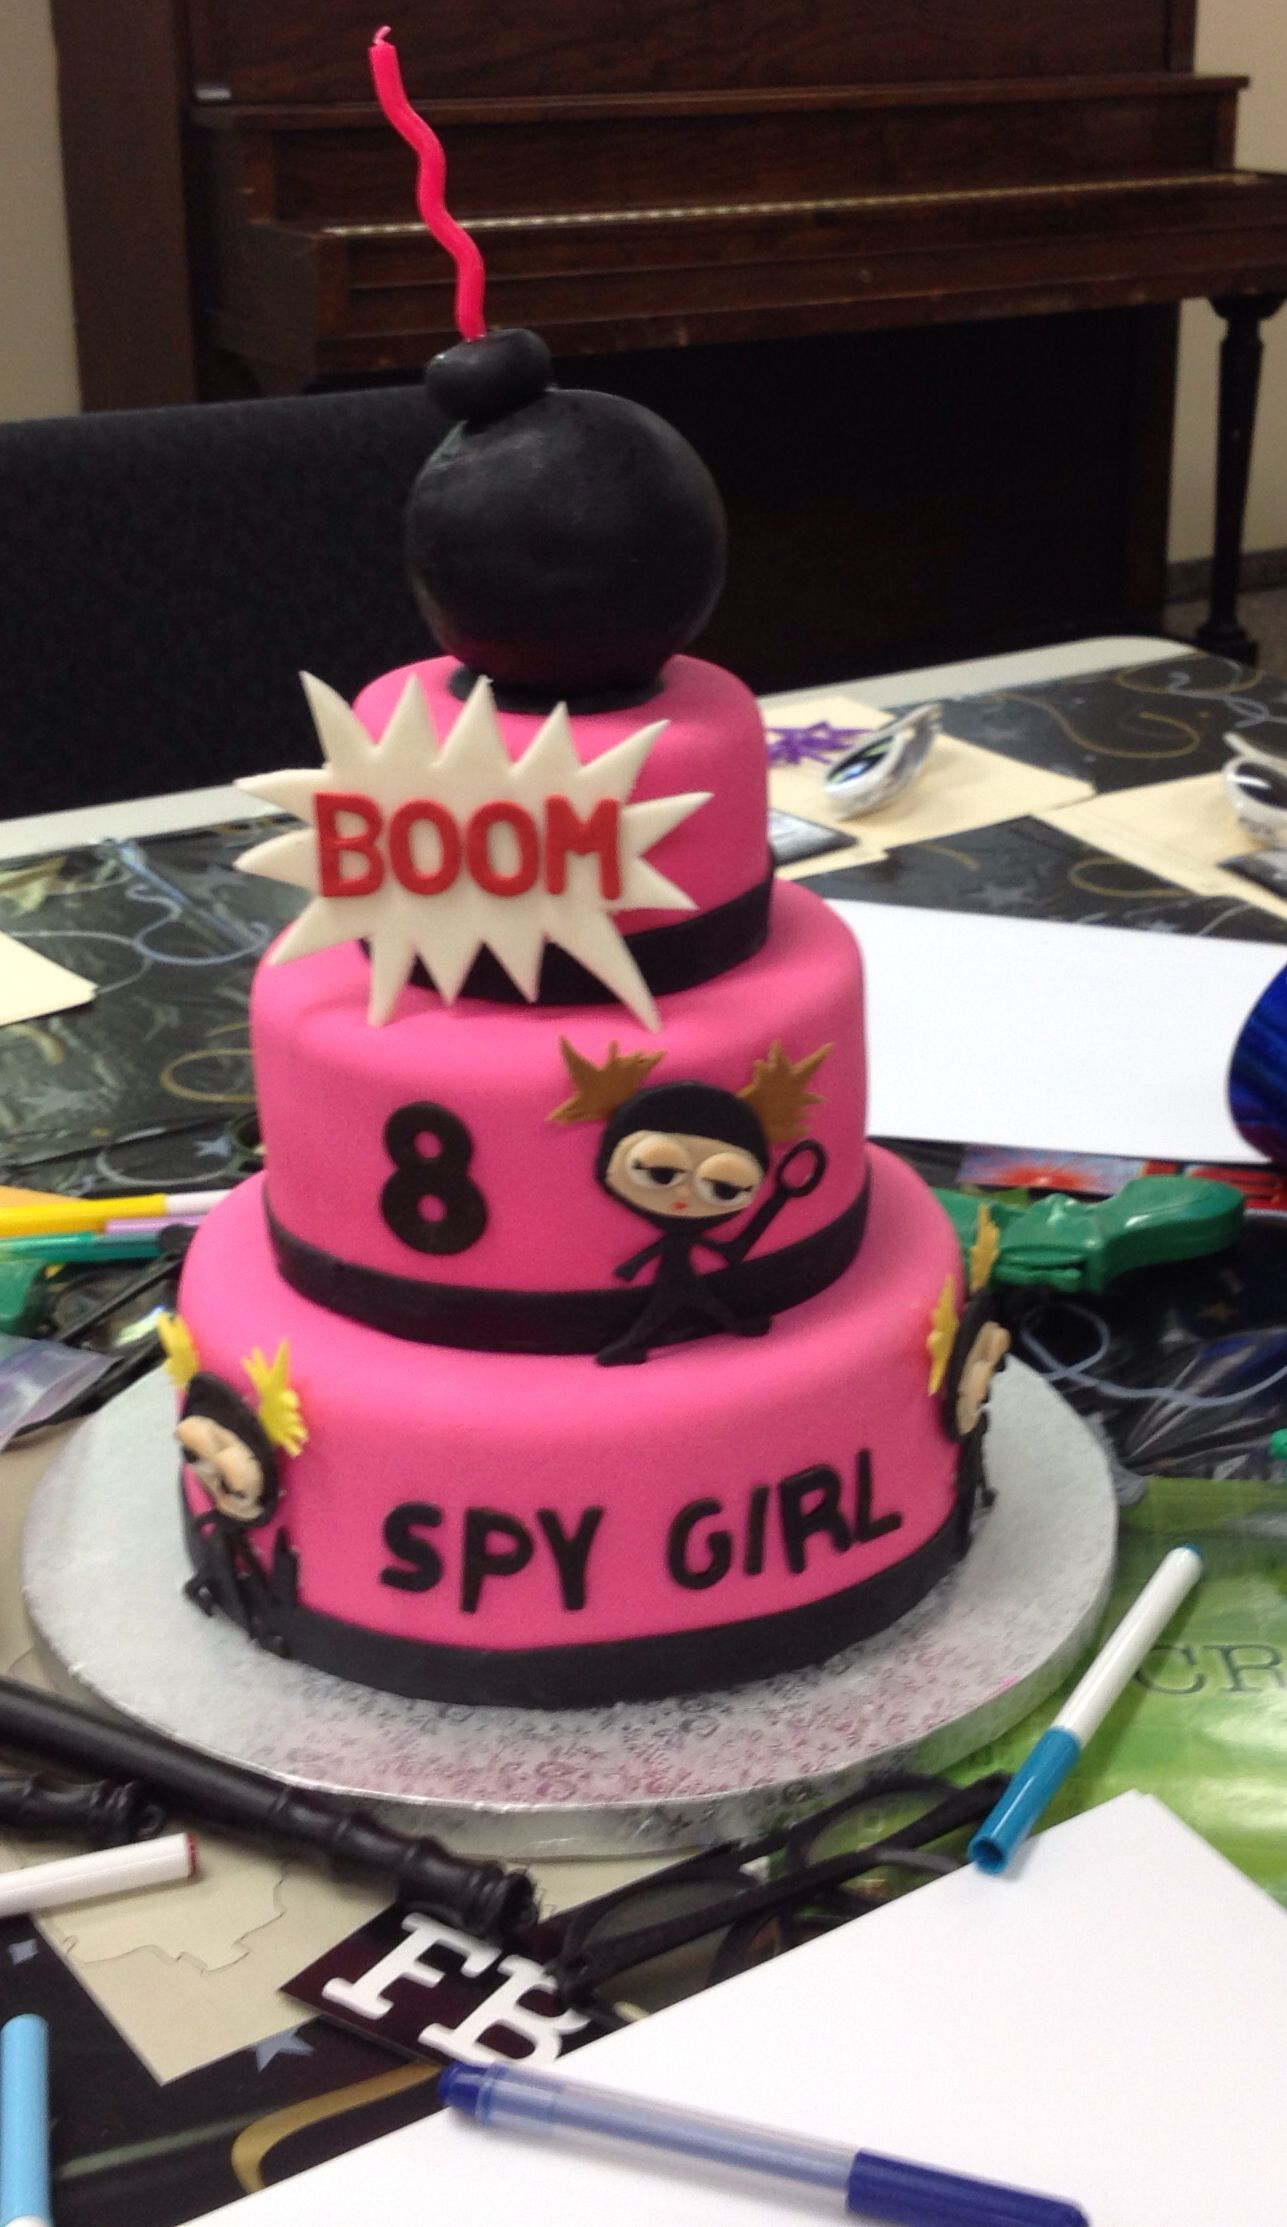 Spy Girl Birthday Cake Allys Cakes Pinterest Girl birthday